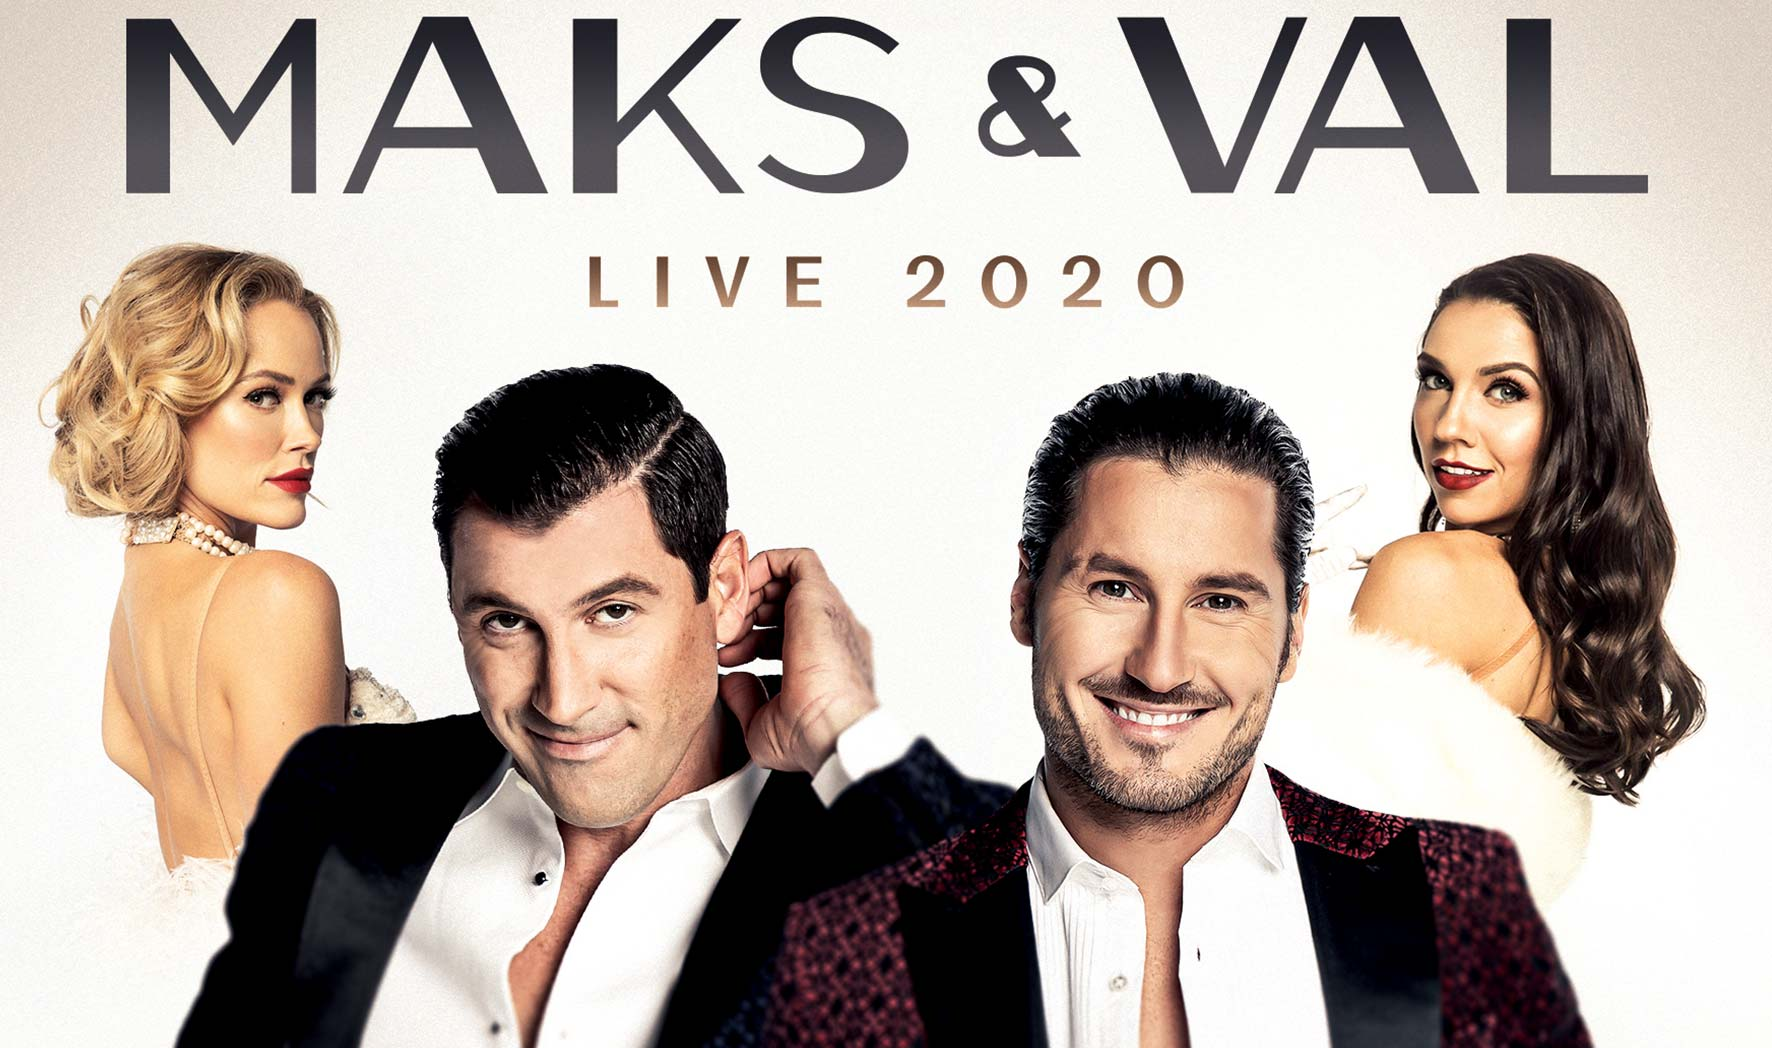 More Info for MAKS & VAL LIVE 2020 - Featuring Peta & Jenna